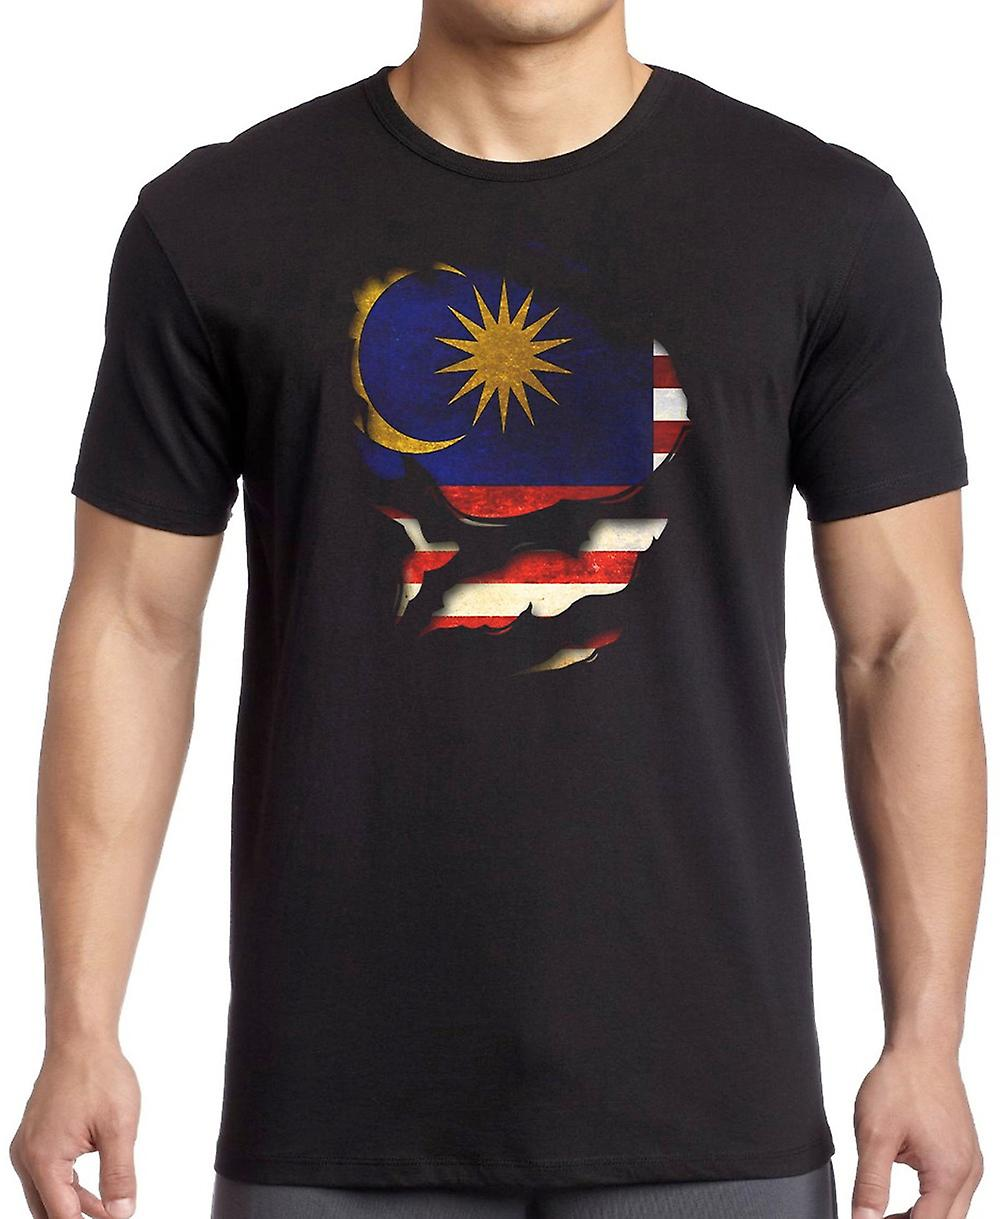 Malaysia Ripped Effect Under Shirt Kids T Shirt